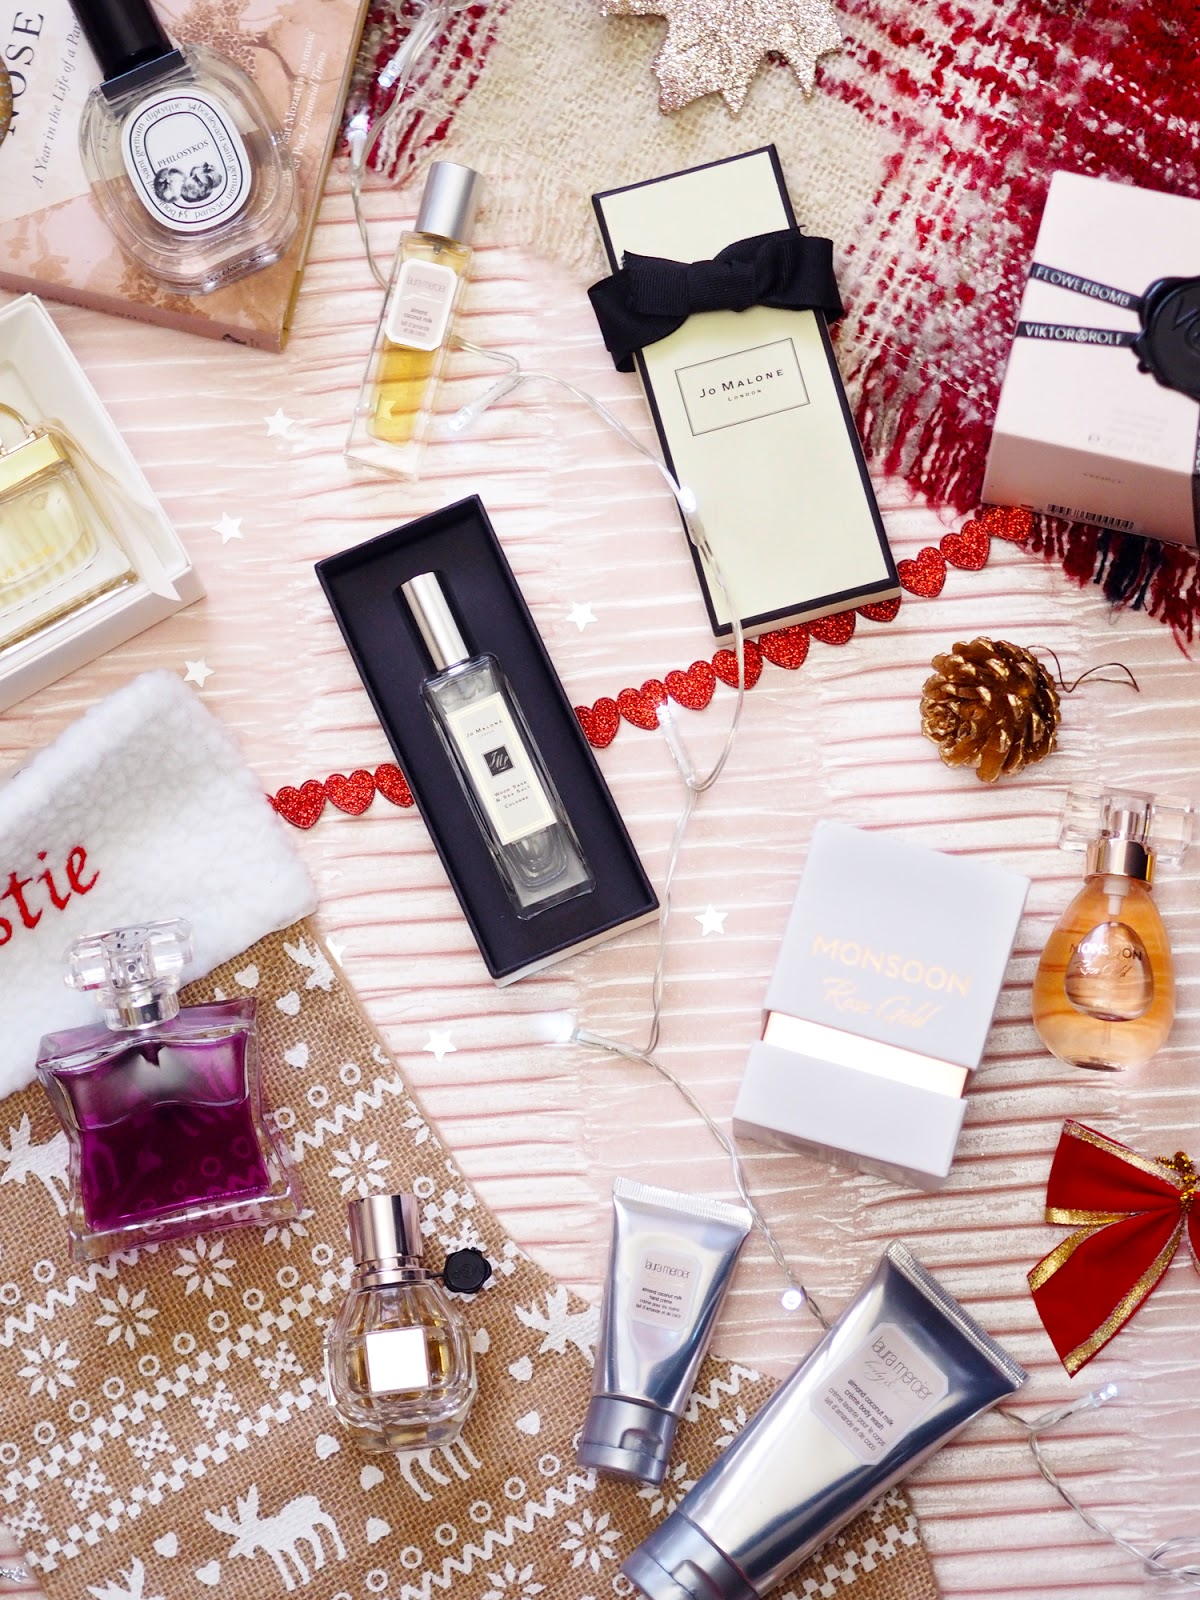 perfume gift guide monsoon rose gold jo malone chloe love story